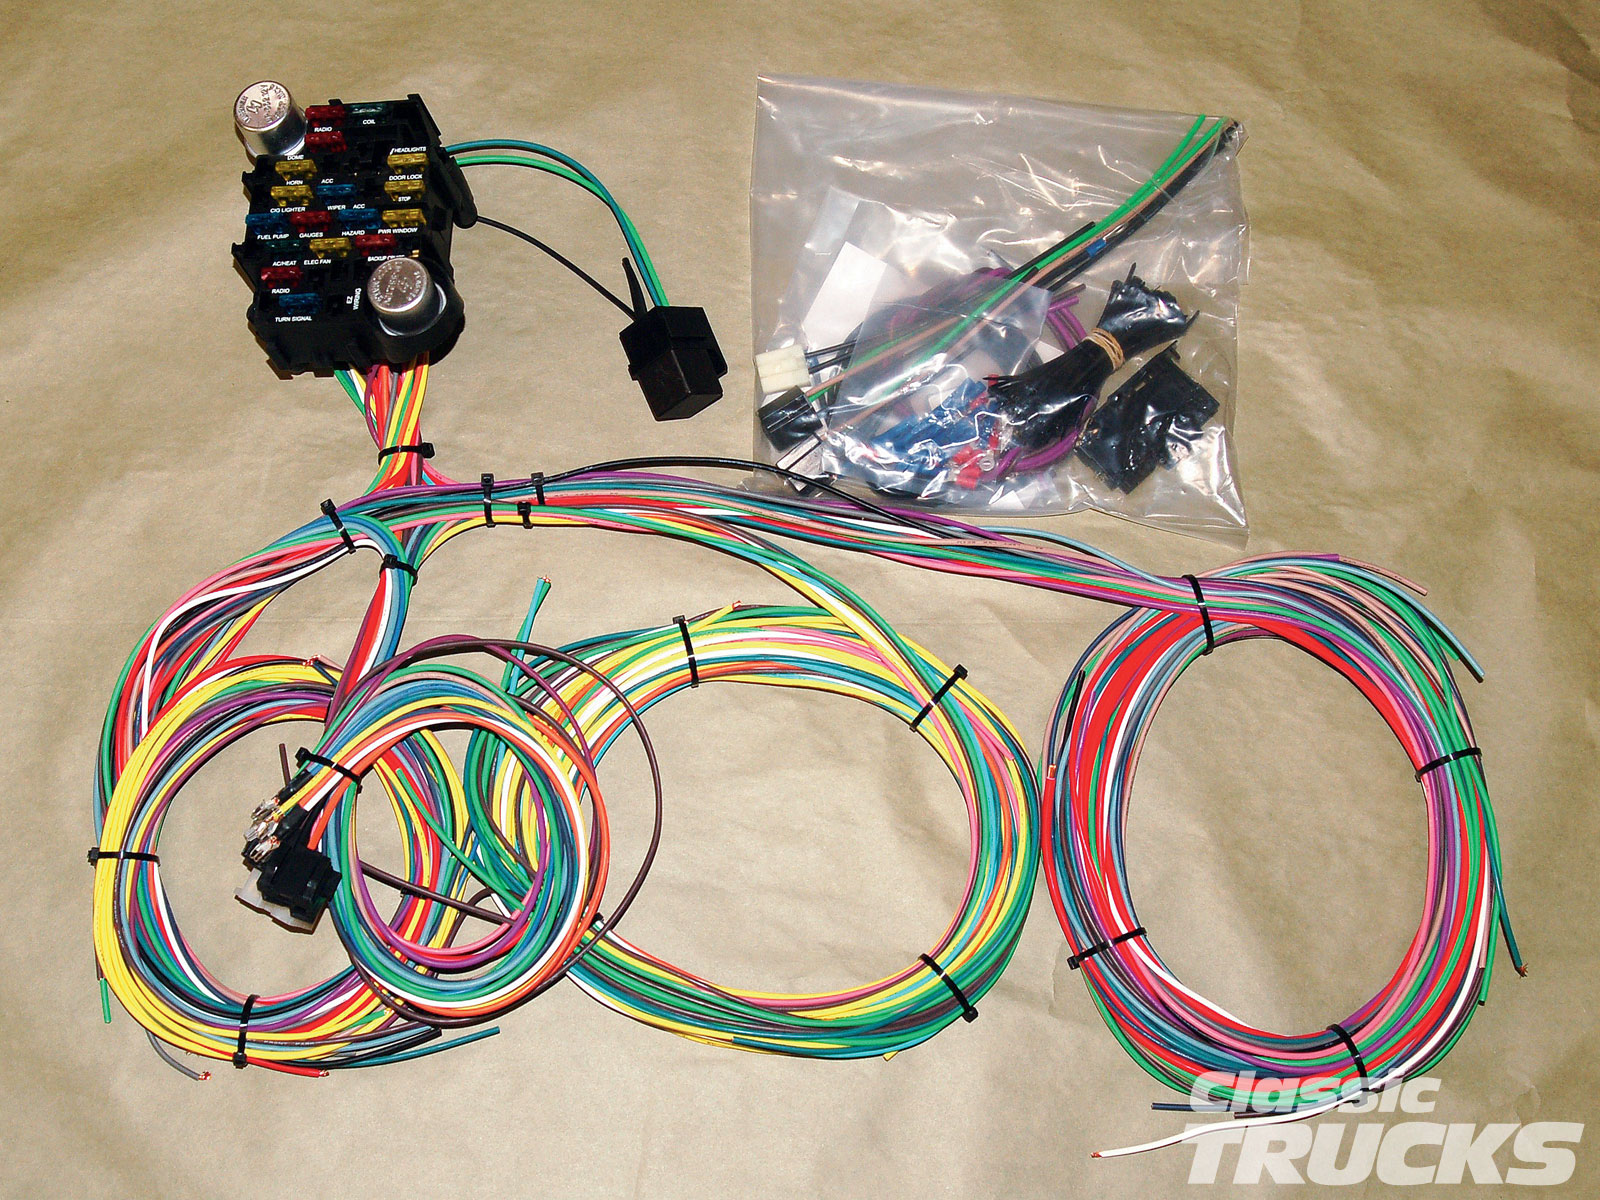 1010clt 02 o aftermarket wiring harness install kit?resize\\\=665%2C499 painless wiring harness australia tamahuproject org universal wiring harness australia at reclaimingppi.co